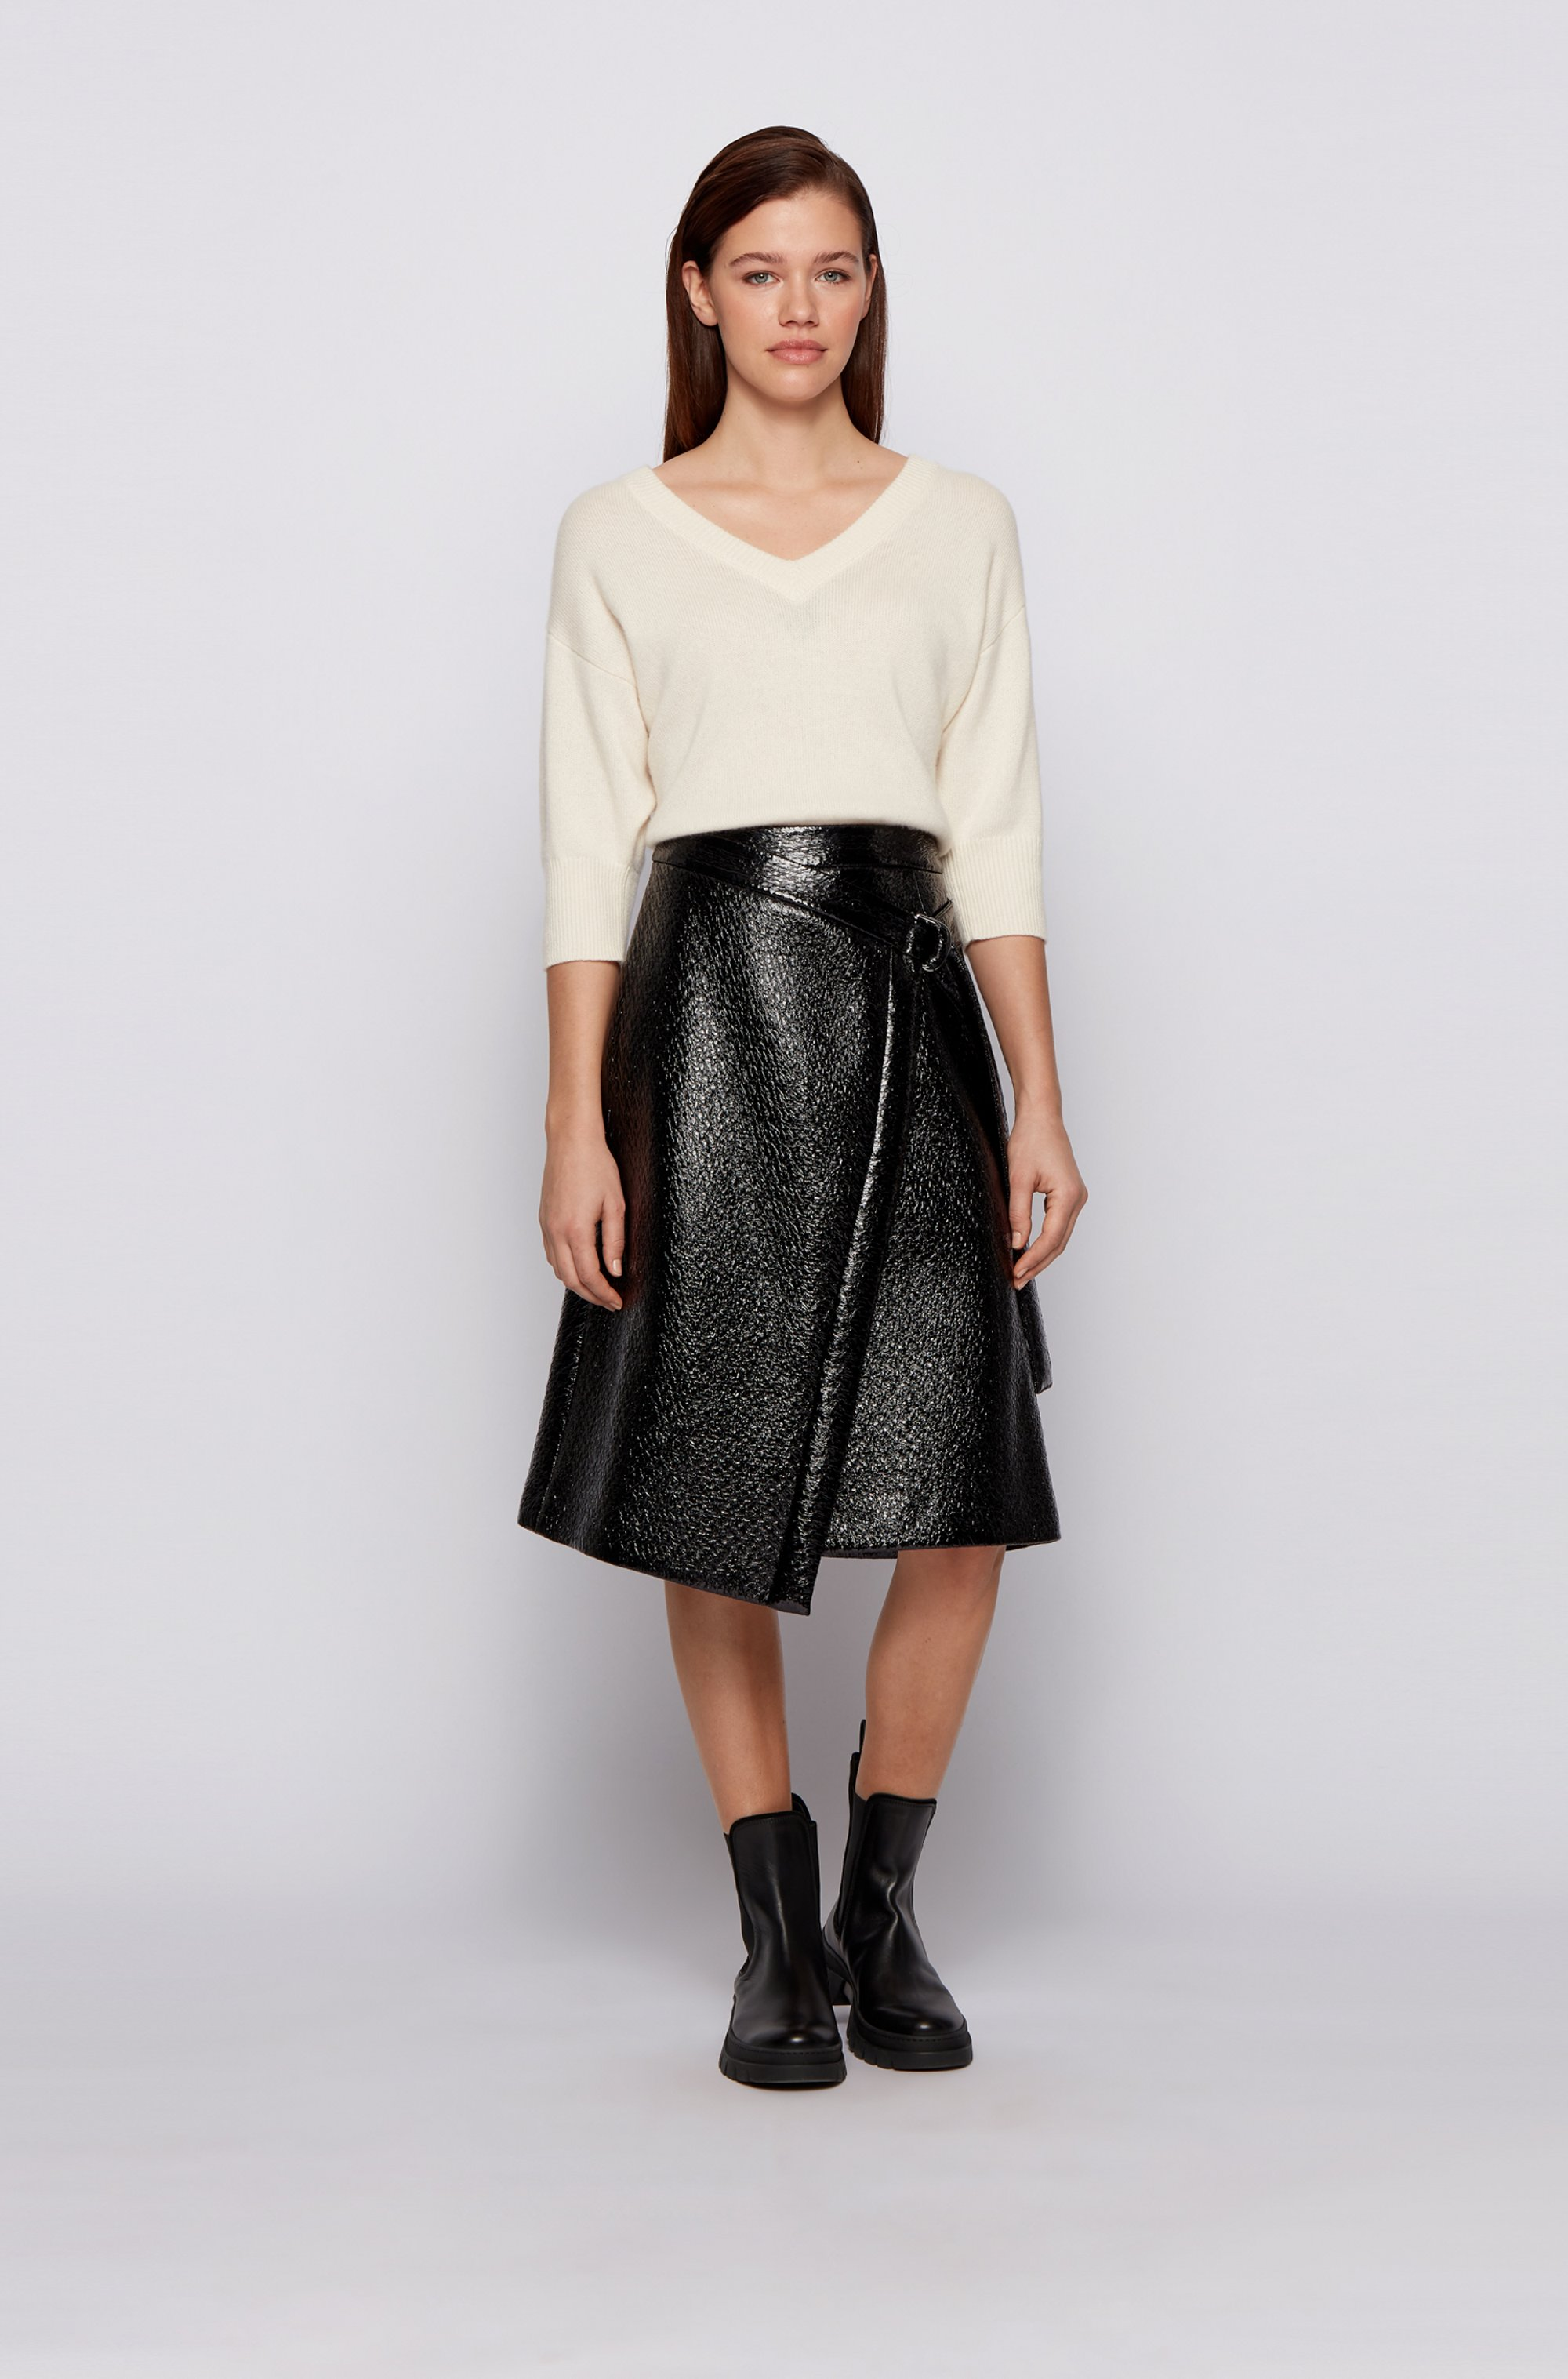 Wrap-style skirt in lacquered crocodile-print faux leather